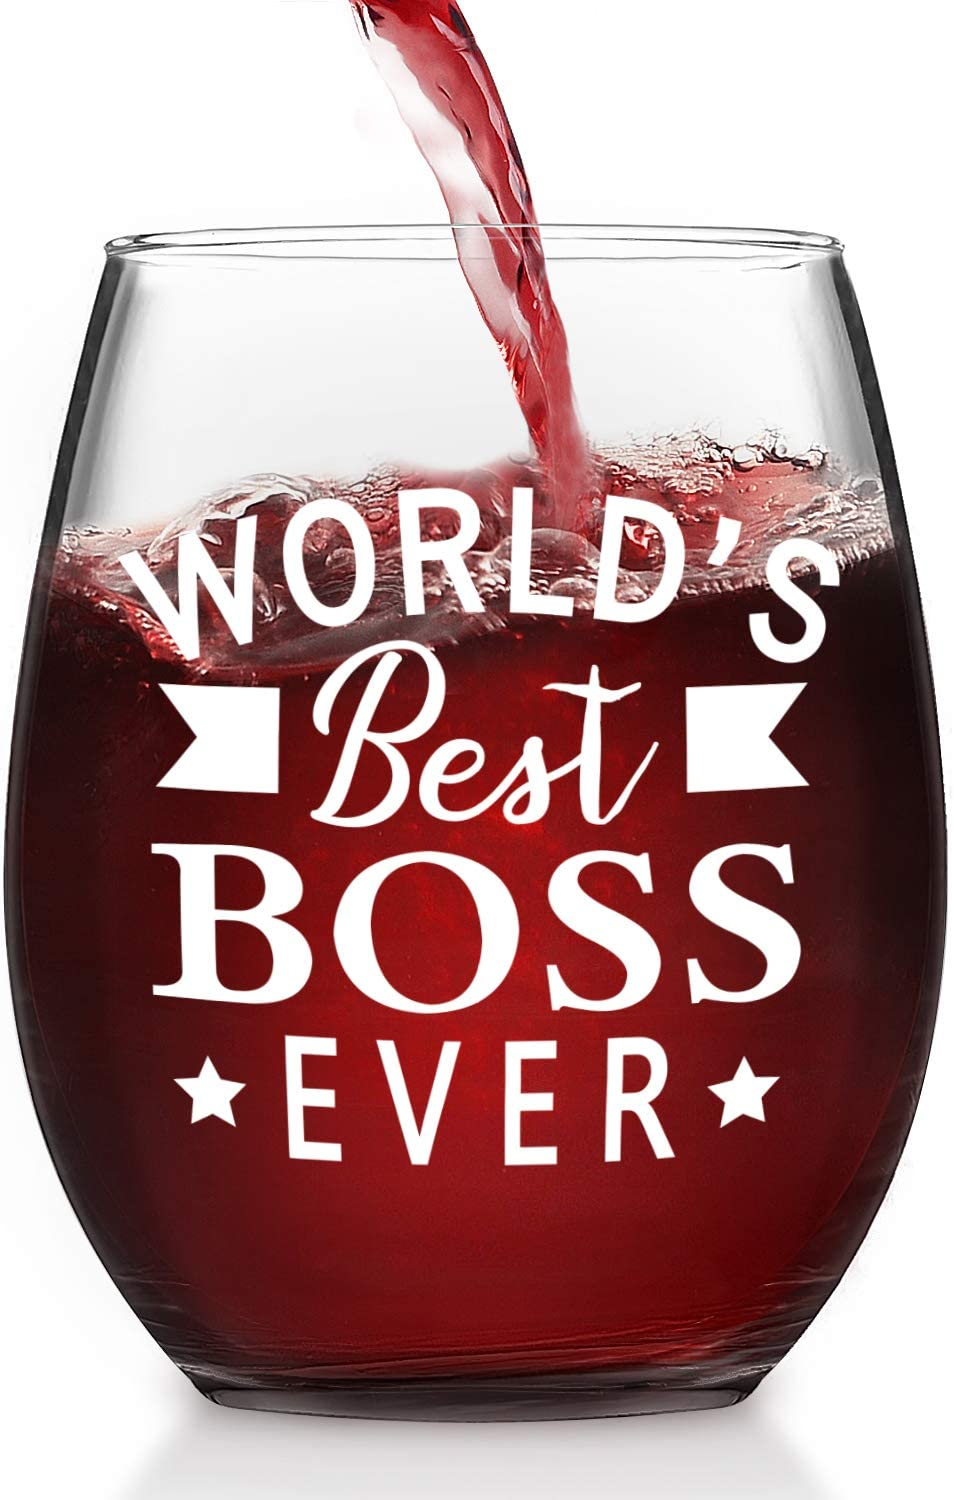 World's Best Boss Ever Stemless Wine Glass, Bosses Day Gifts for Men Women Male Female Bosses Coworkers Bosses Day Christmas Birthday Party, 15 Oz Wine Glass for Red White Wine, Office or Daily Use